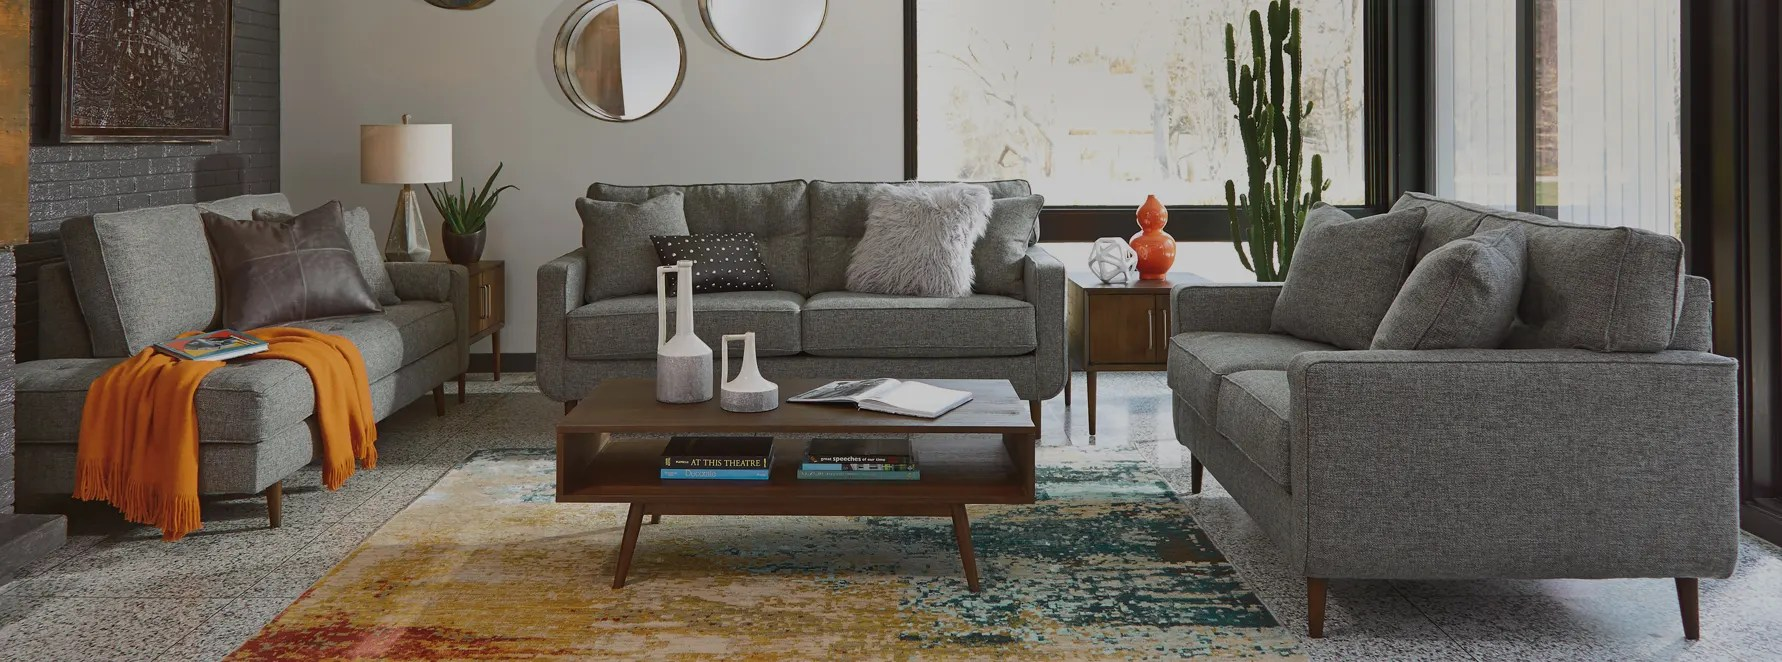 Modern Living Room Furniture For Small Spaces Small Spaces Ashley Homestore Canada